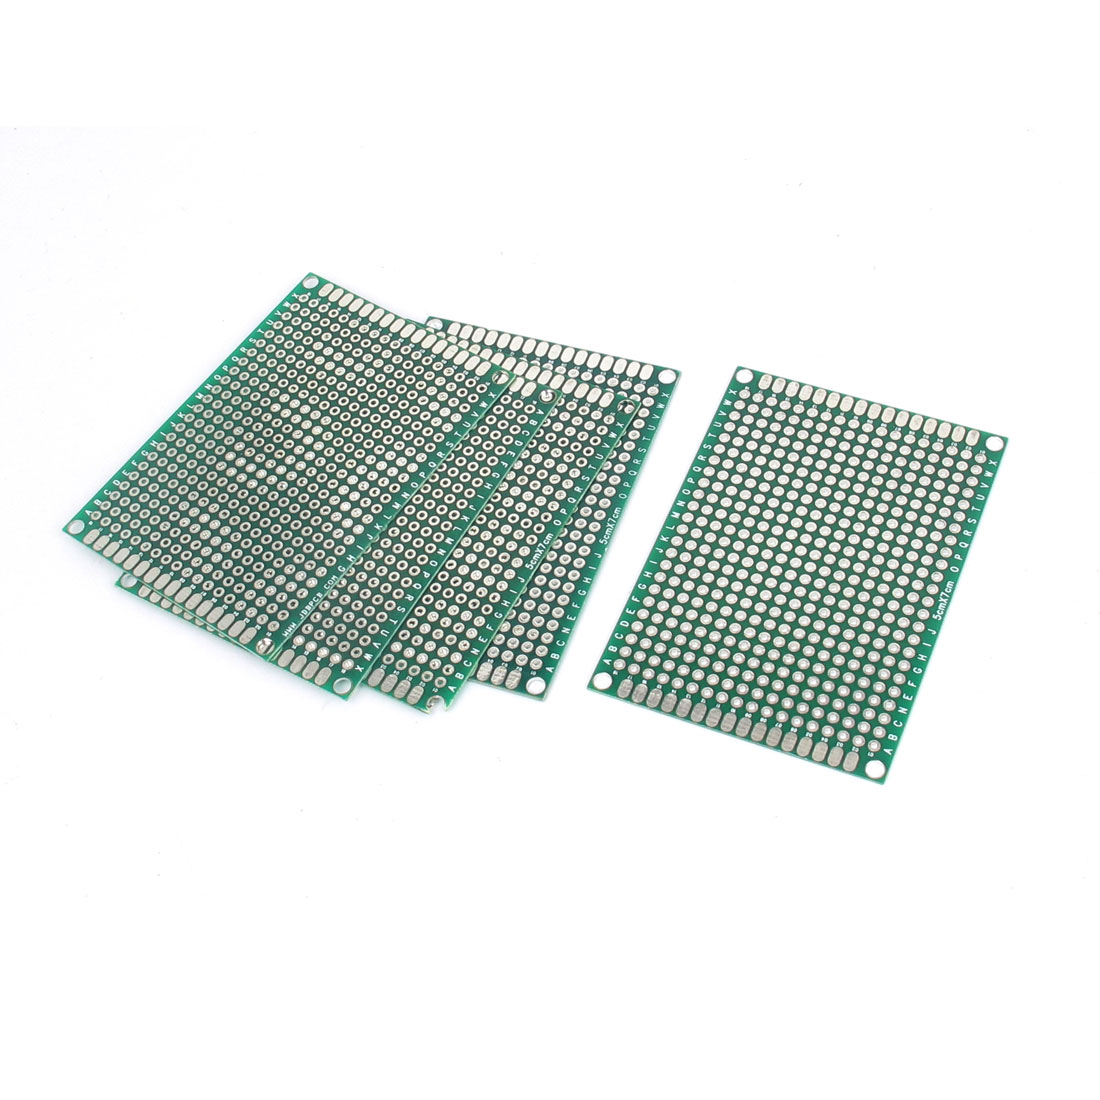 5pcs 5cm x 7cm Dual Sided Prototyping Universal PCB Printed Circuit Board Breadboard